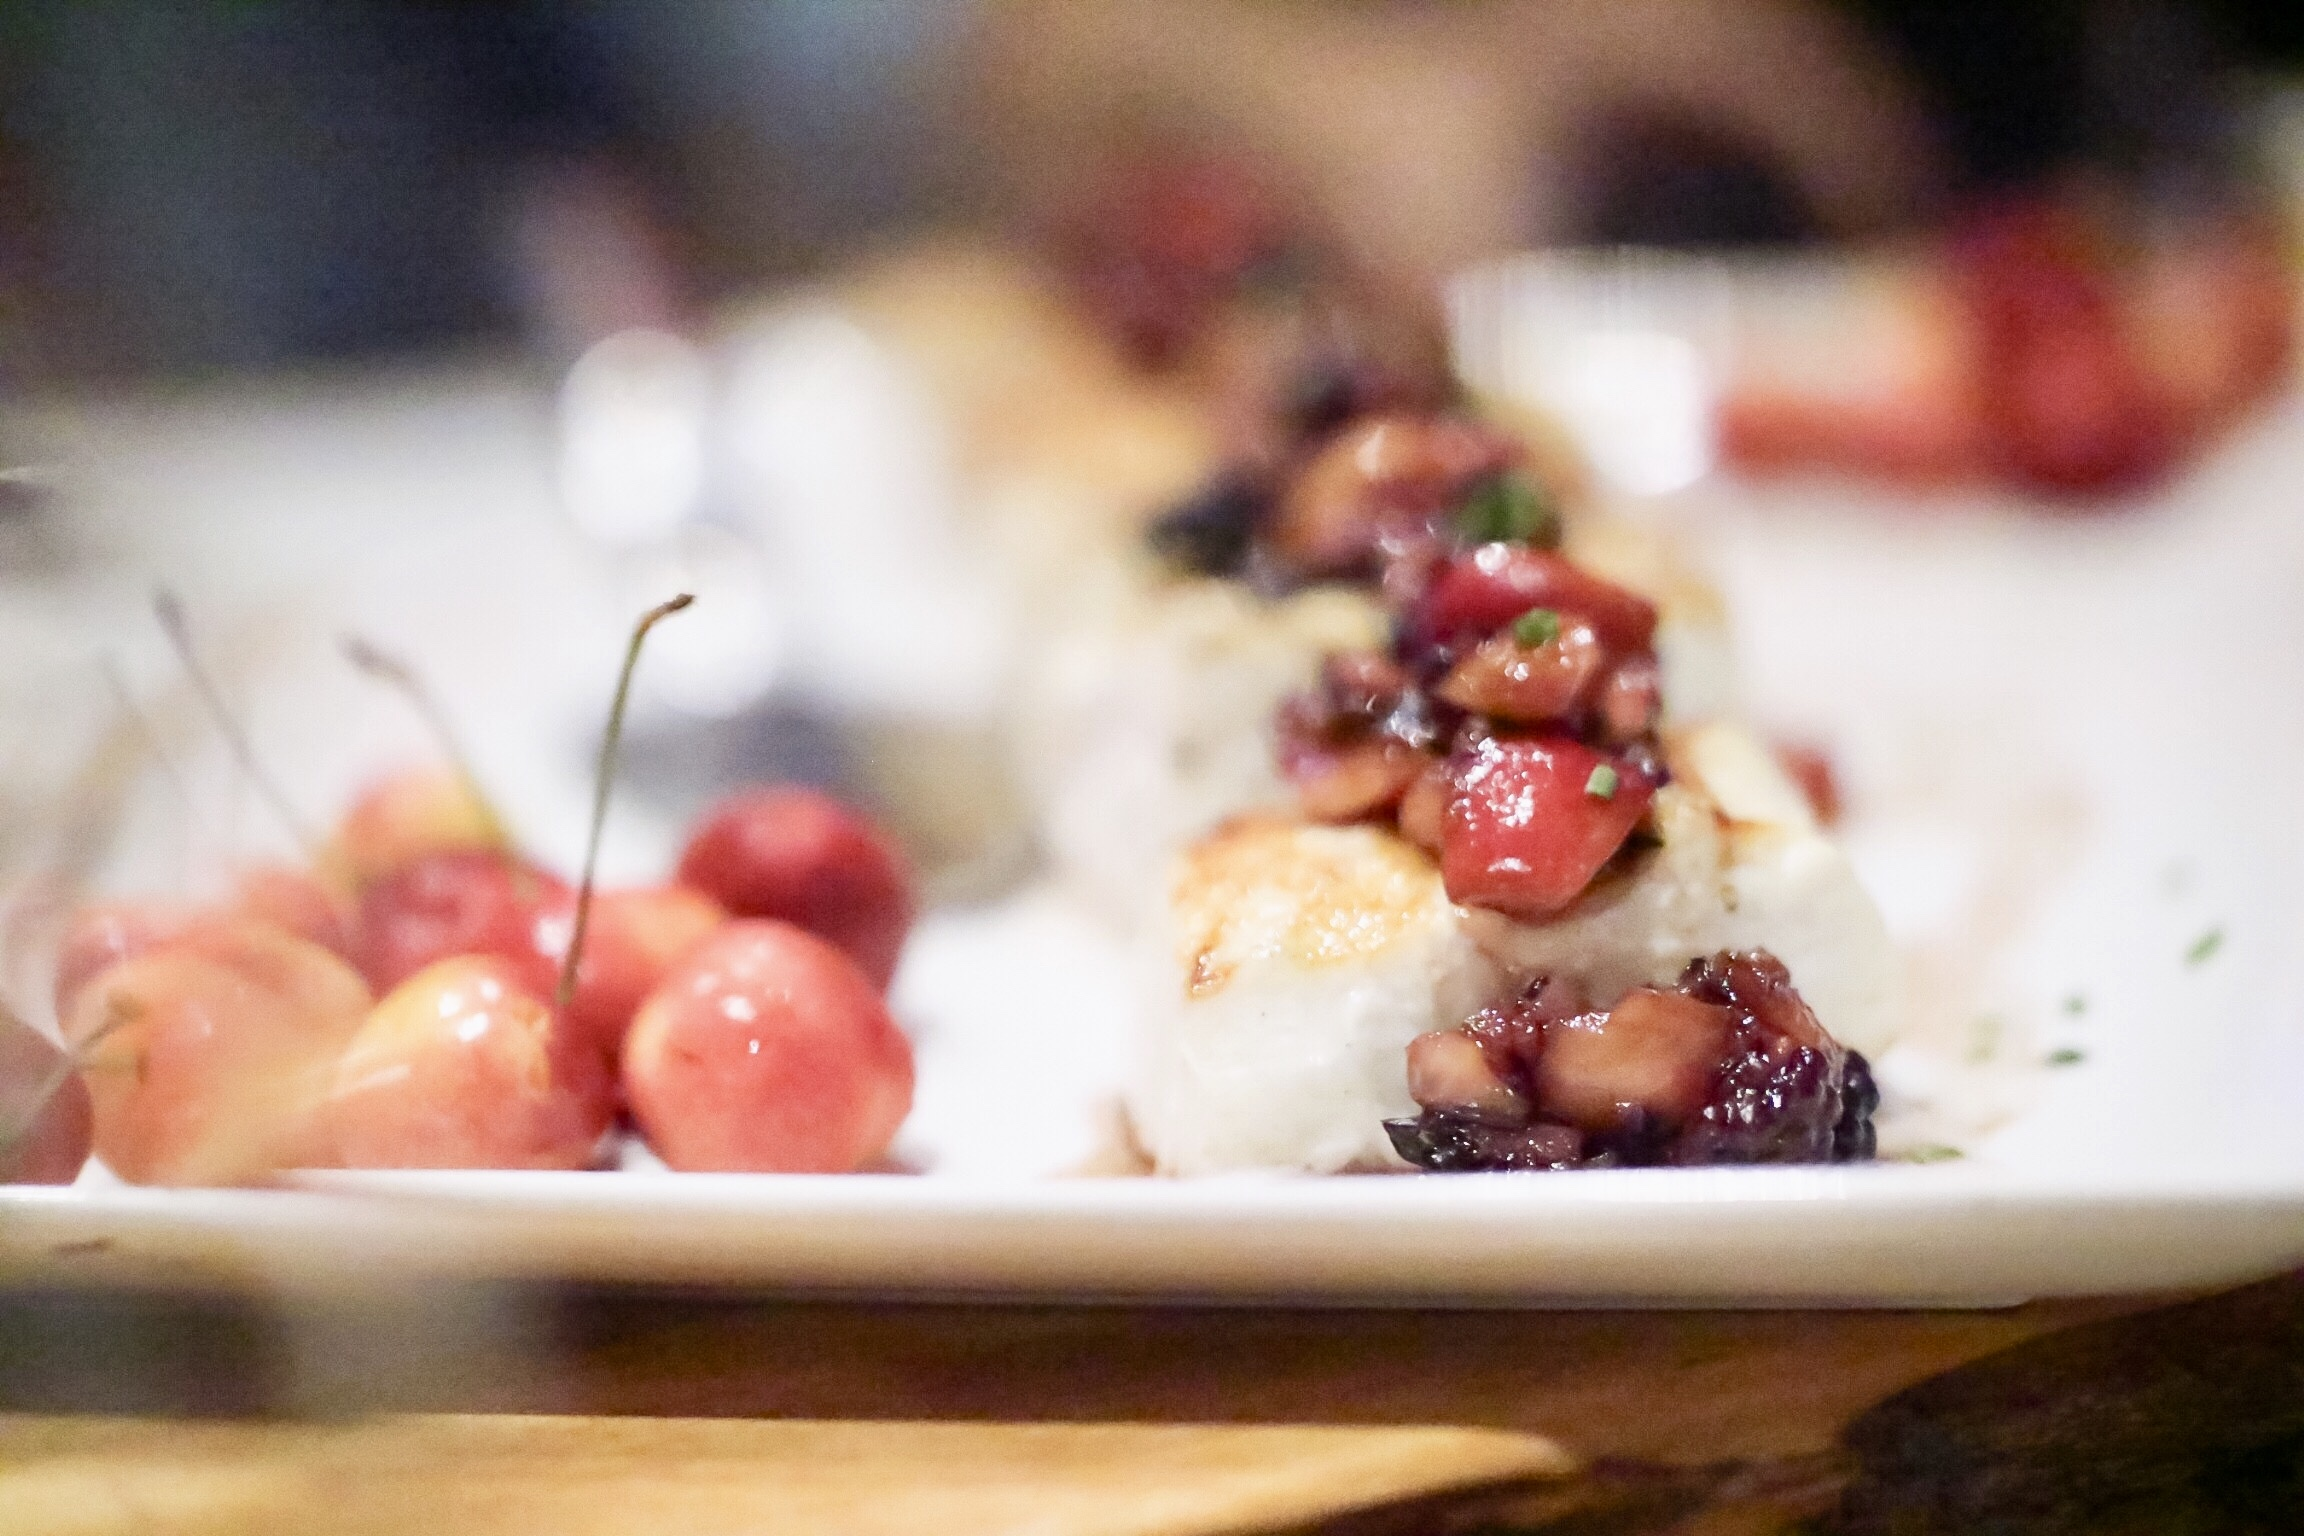 Grilled Halibut & Cherry Salsa